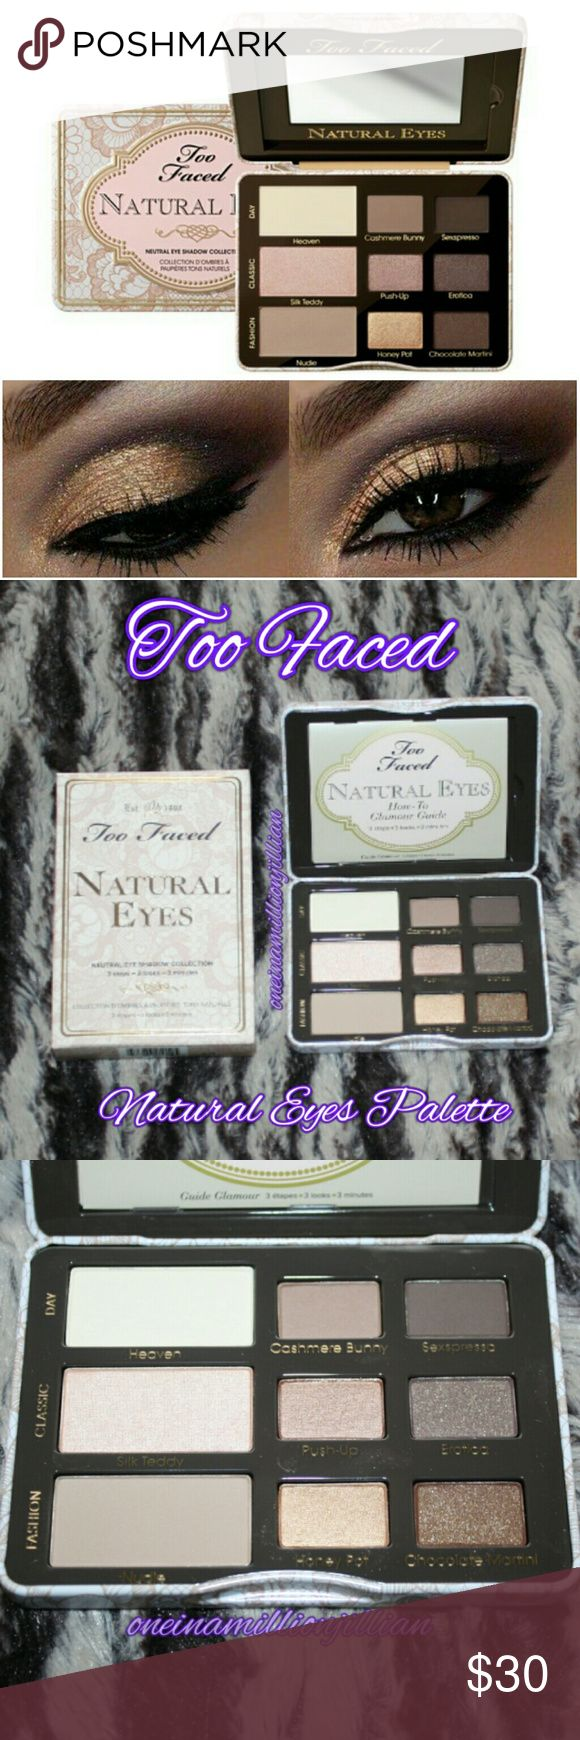 Too Faced Natural Eyes Palette New in Box (Swatches from Google)  Full Sz & Authentic  Colors Include: - .07oz pan Heaven, Silk Teddy & Nudie - .03oz pan Cashmere Bunny, Sexpresso, Push-up, Erotica, Honey Pot & Chocolate Martini  This palette comes housed in a mirrored tin with a step-by-step guide to creating flattering looks. It features 9 neutral shadows, including 3 NEW hues, larger sizes of 3 complementary shadows & 3 TF faves. It is a must-have solution for creating neutral eye looks…